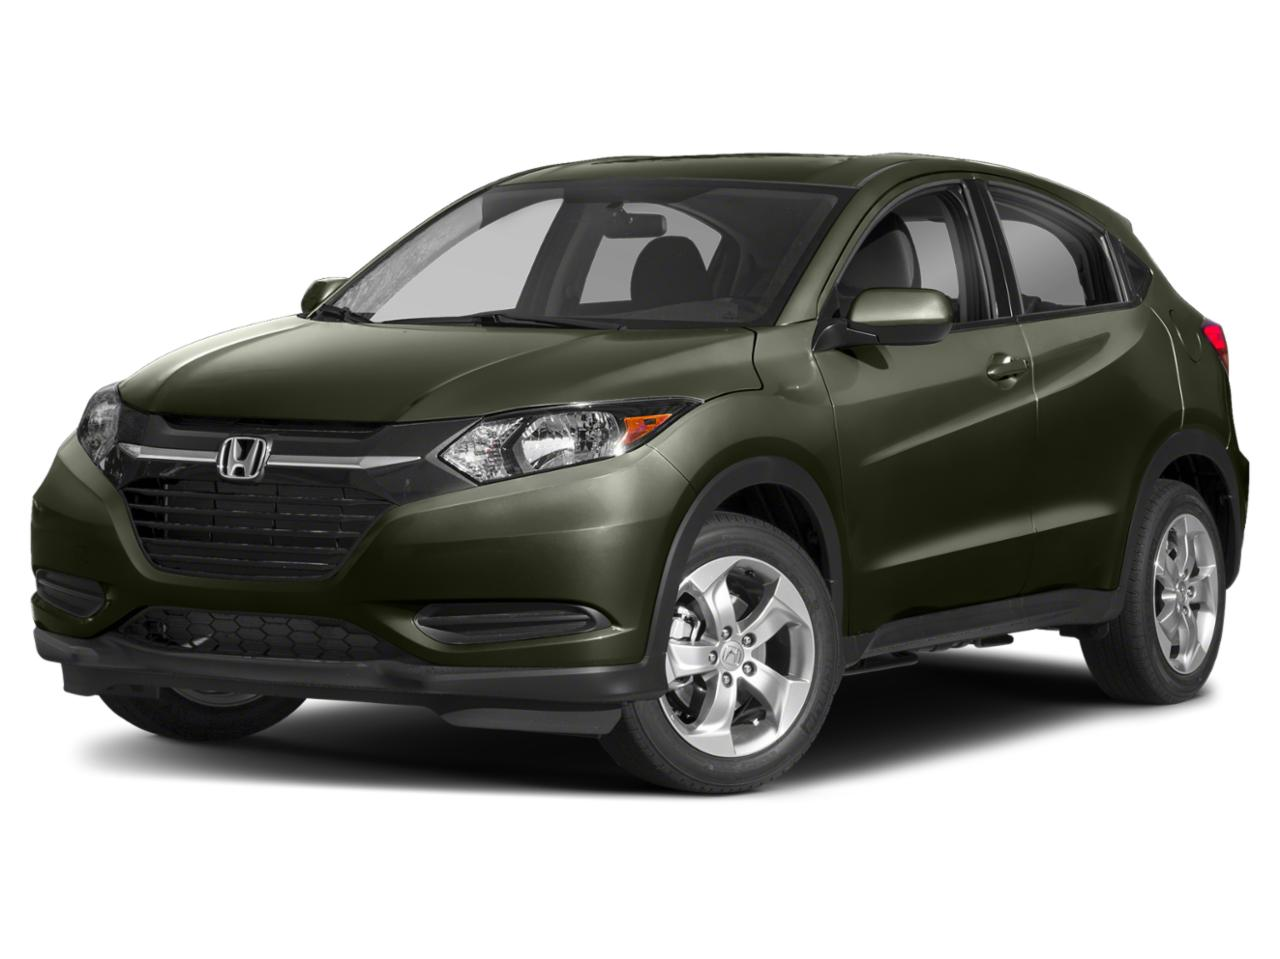 2018 Honda HR-V Vehicle Photo in Bowie, MD 20716